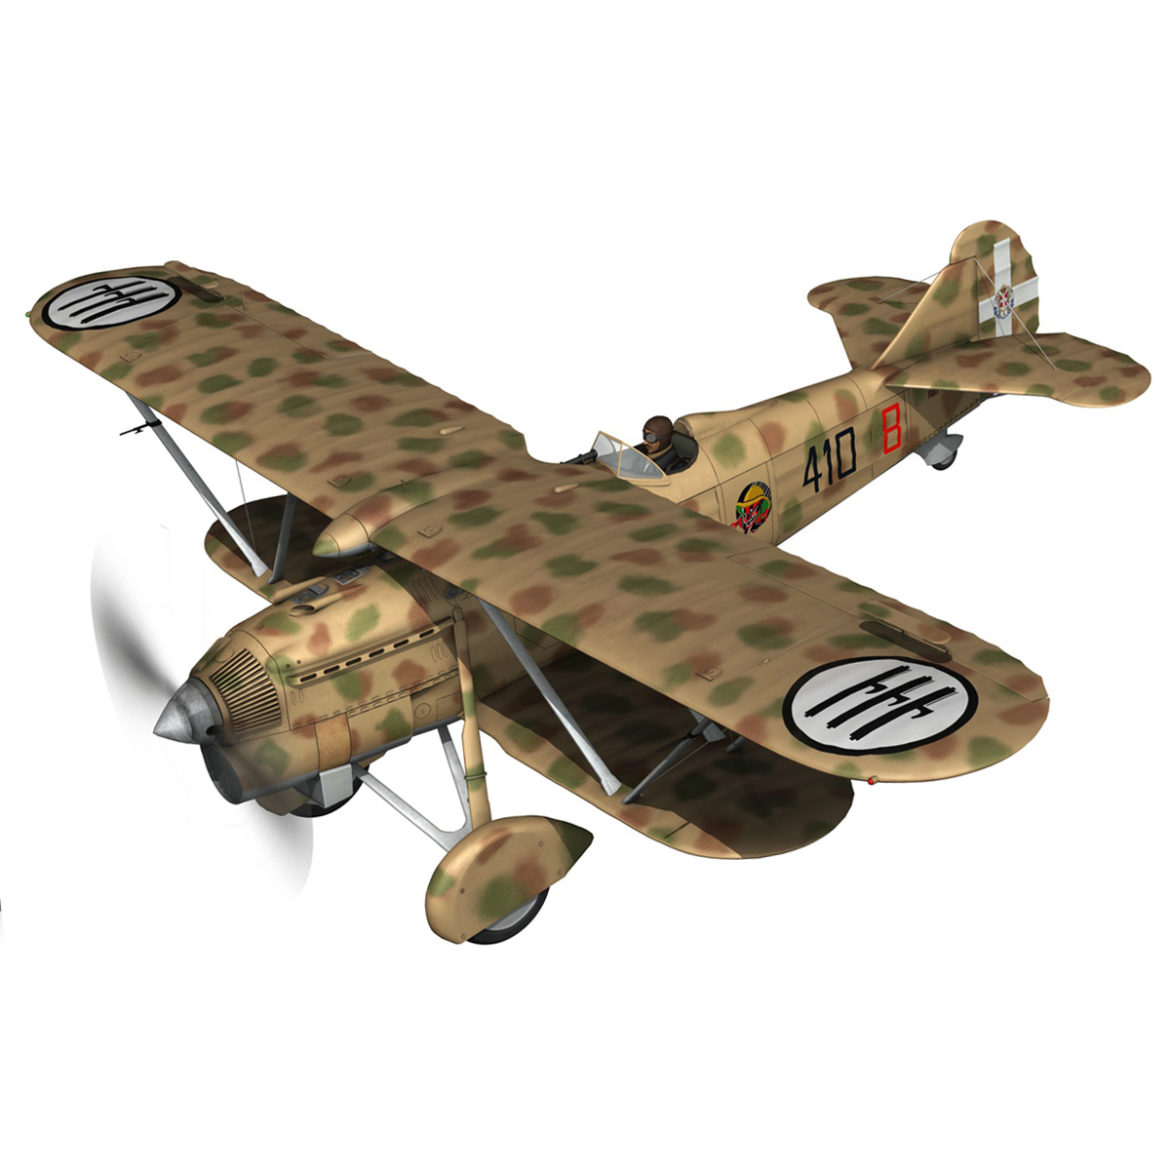 fiat cr.32 – italy airforce – 410 squadriglia 3d model fbx c4d lwo obj 307542